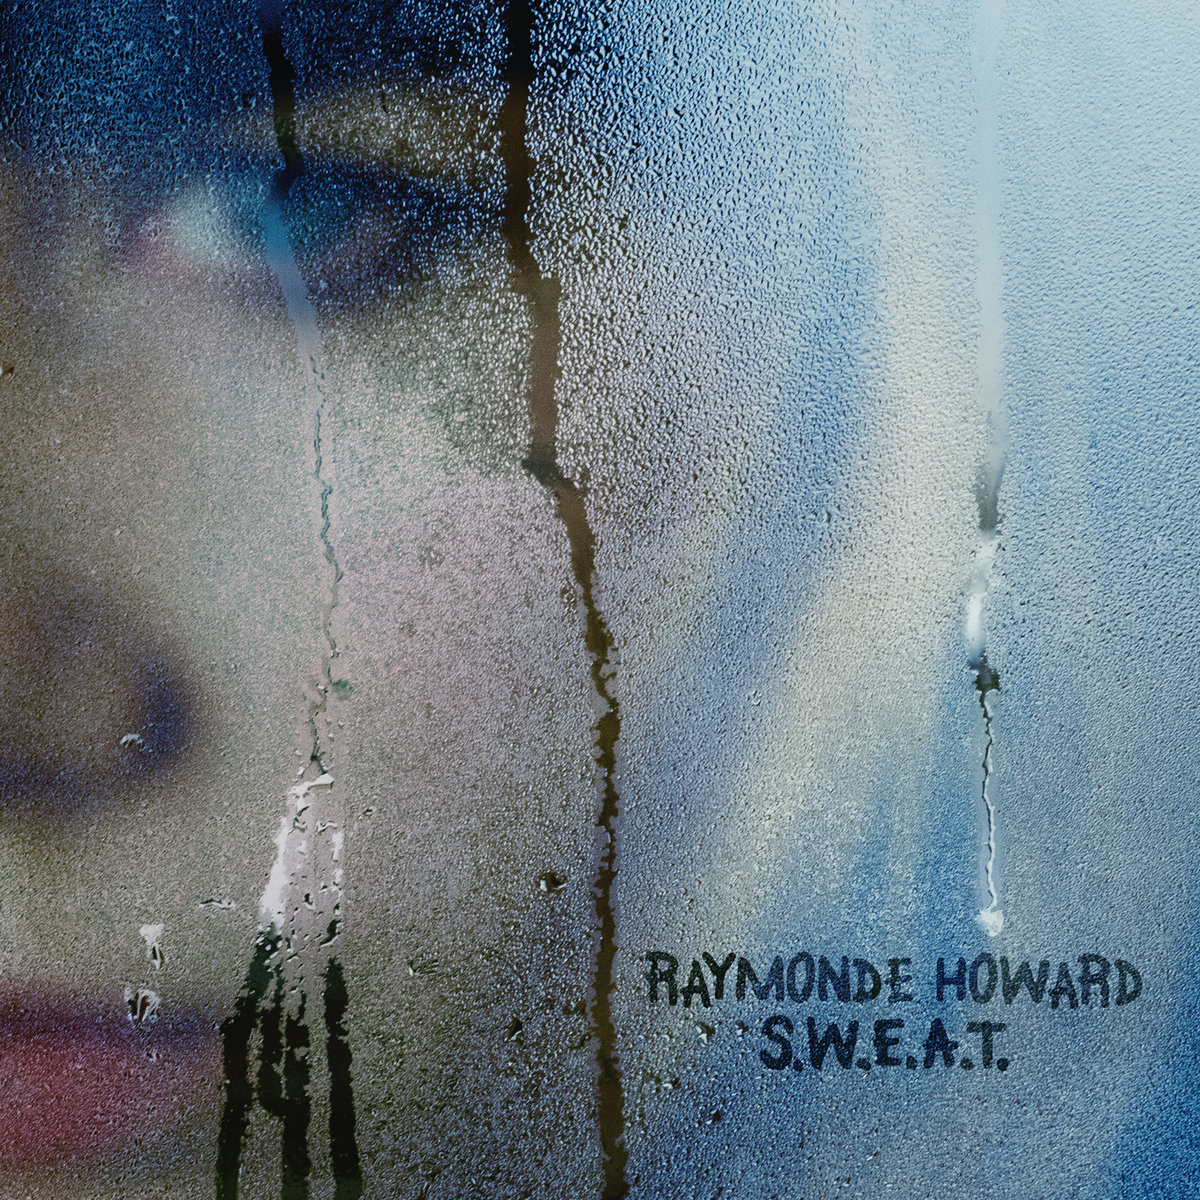 RAYMONDE HOWARD S.w.e.a.t. - Vinyl LP (black)